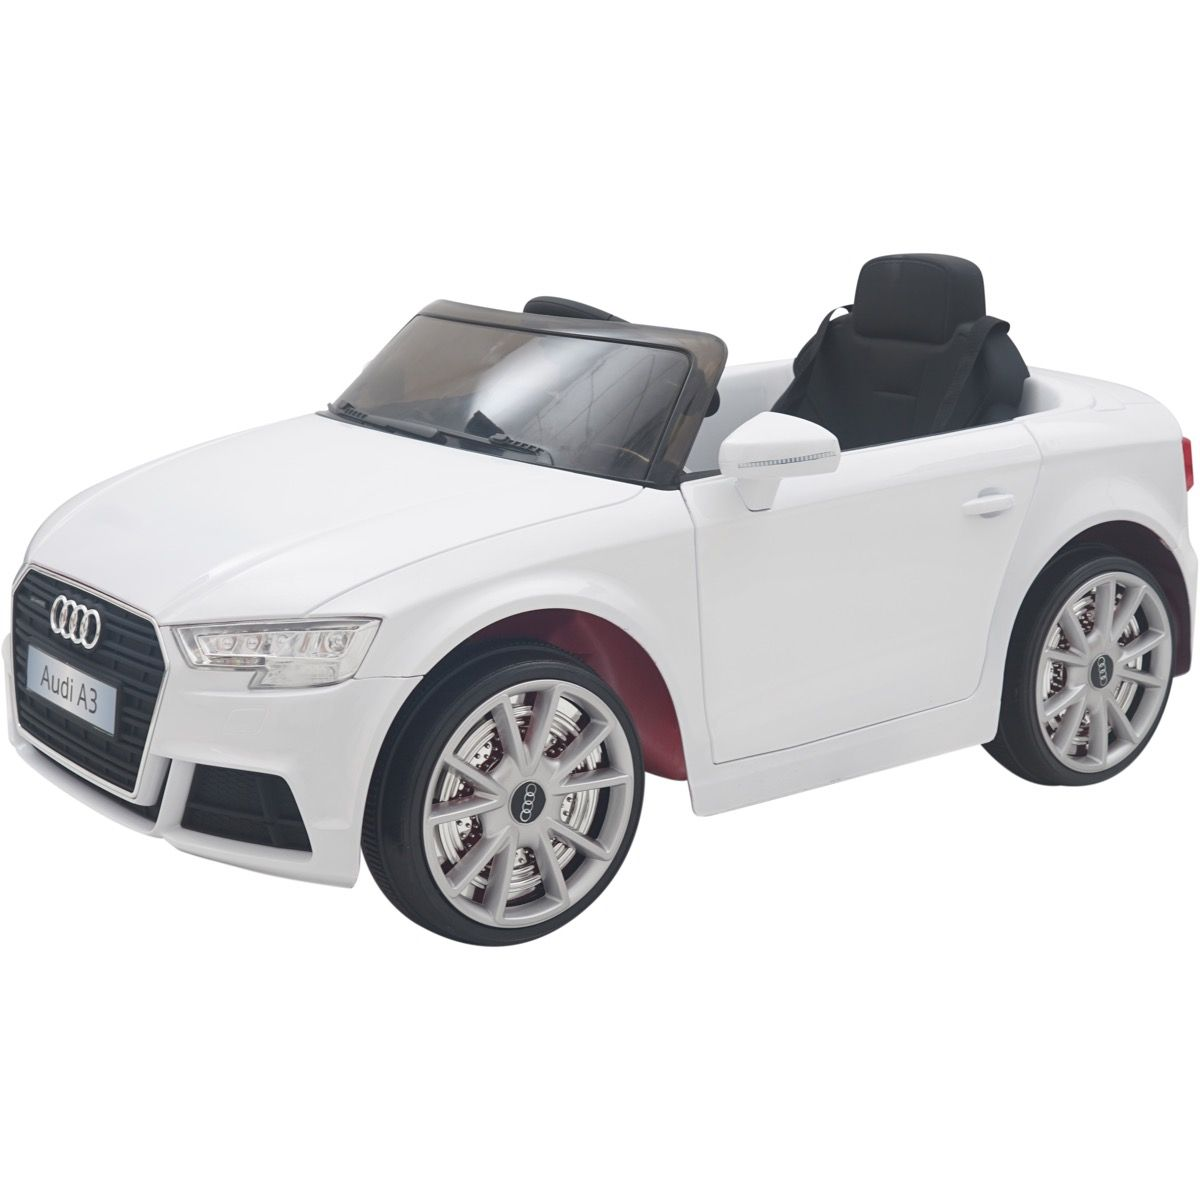 b59974bc803e Licensed Audi A3 12V Battery Operated Children's Ride On Car - White For  Just £109.95 | Outdoor Toys